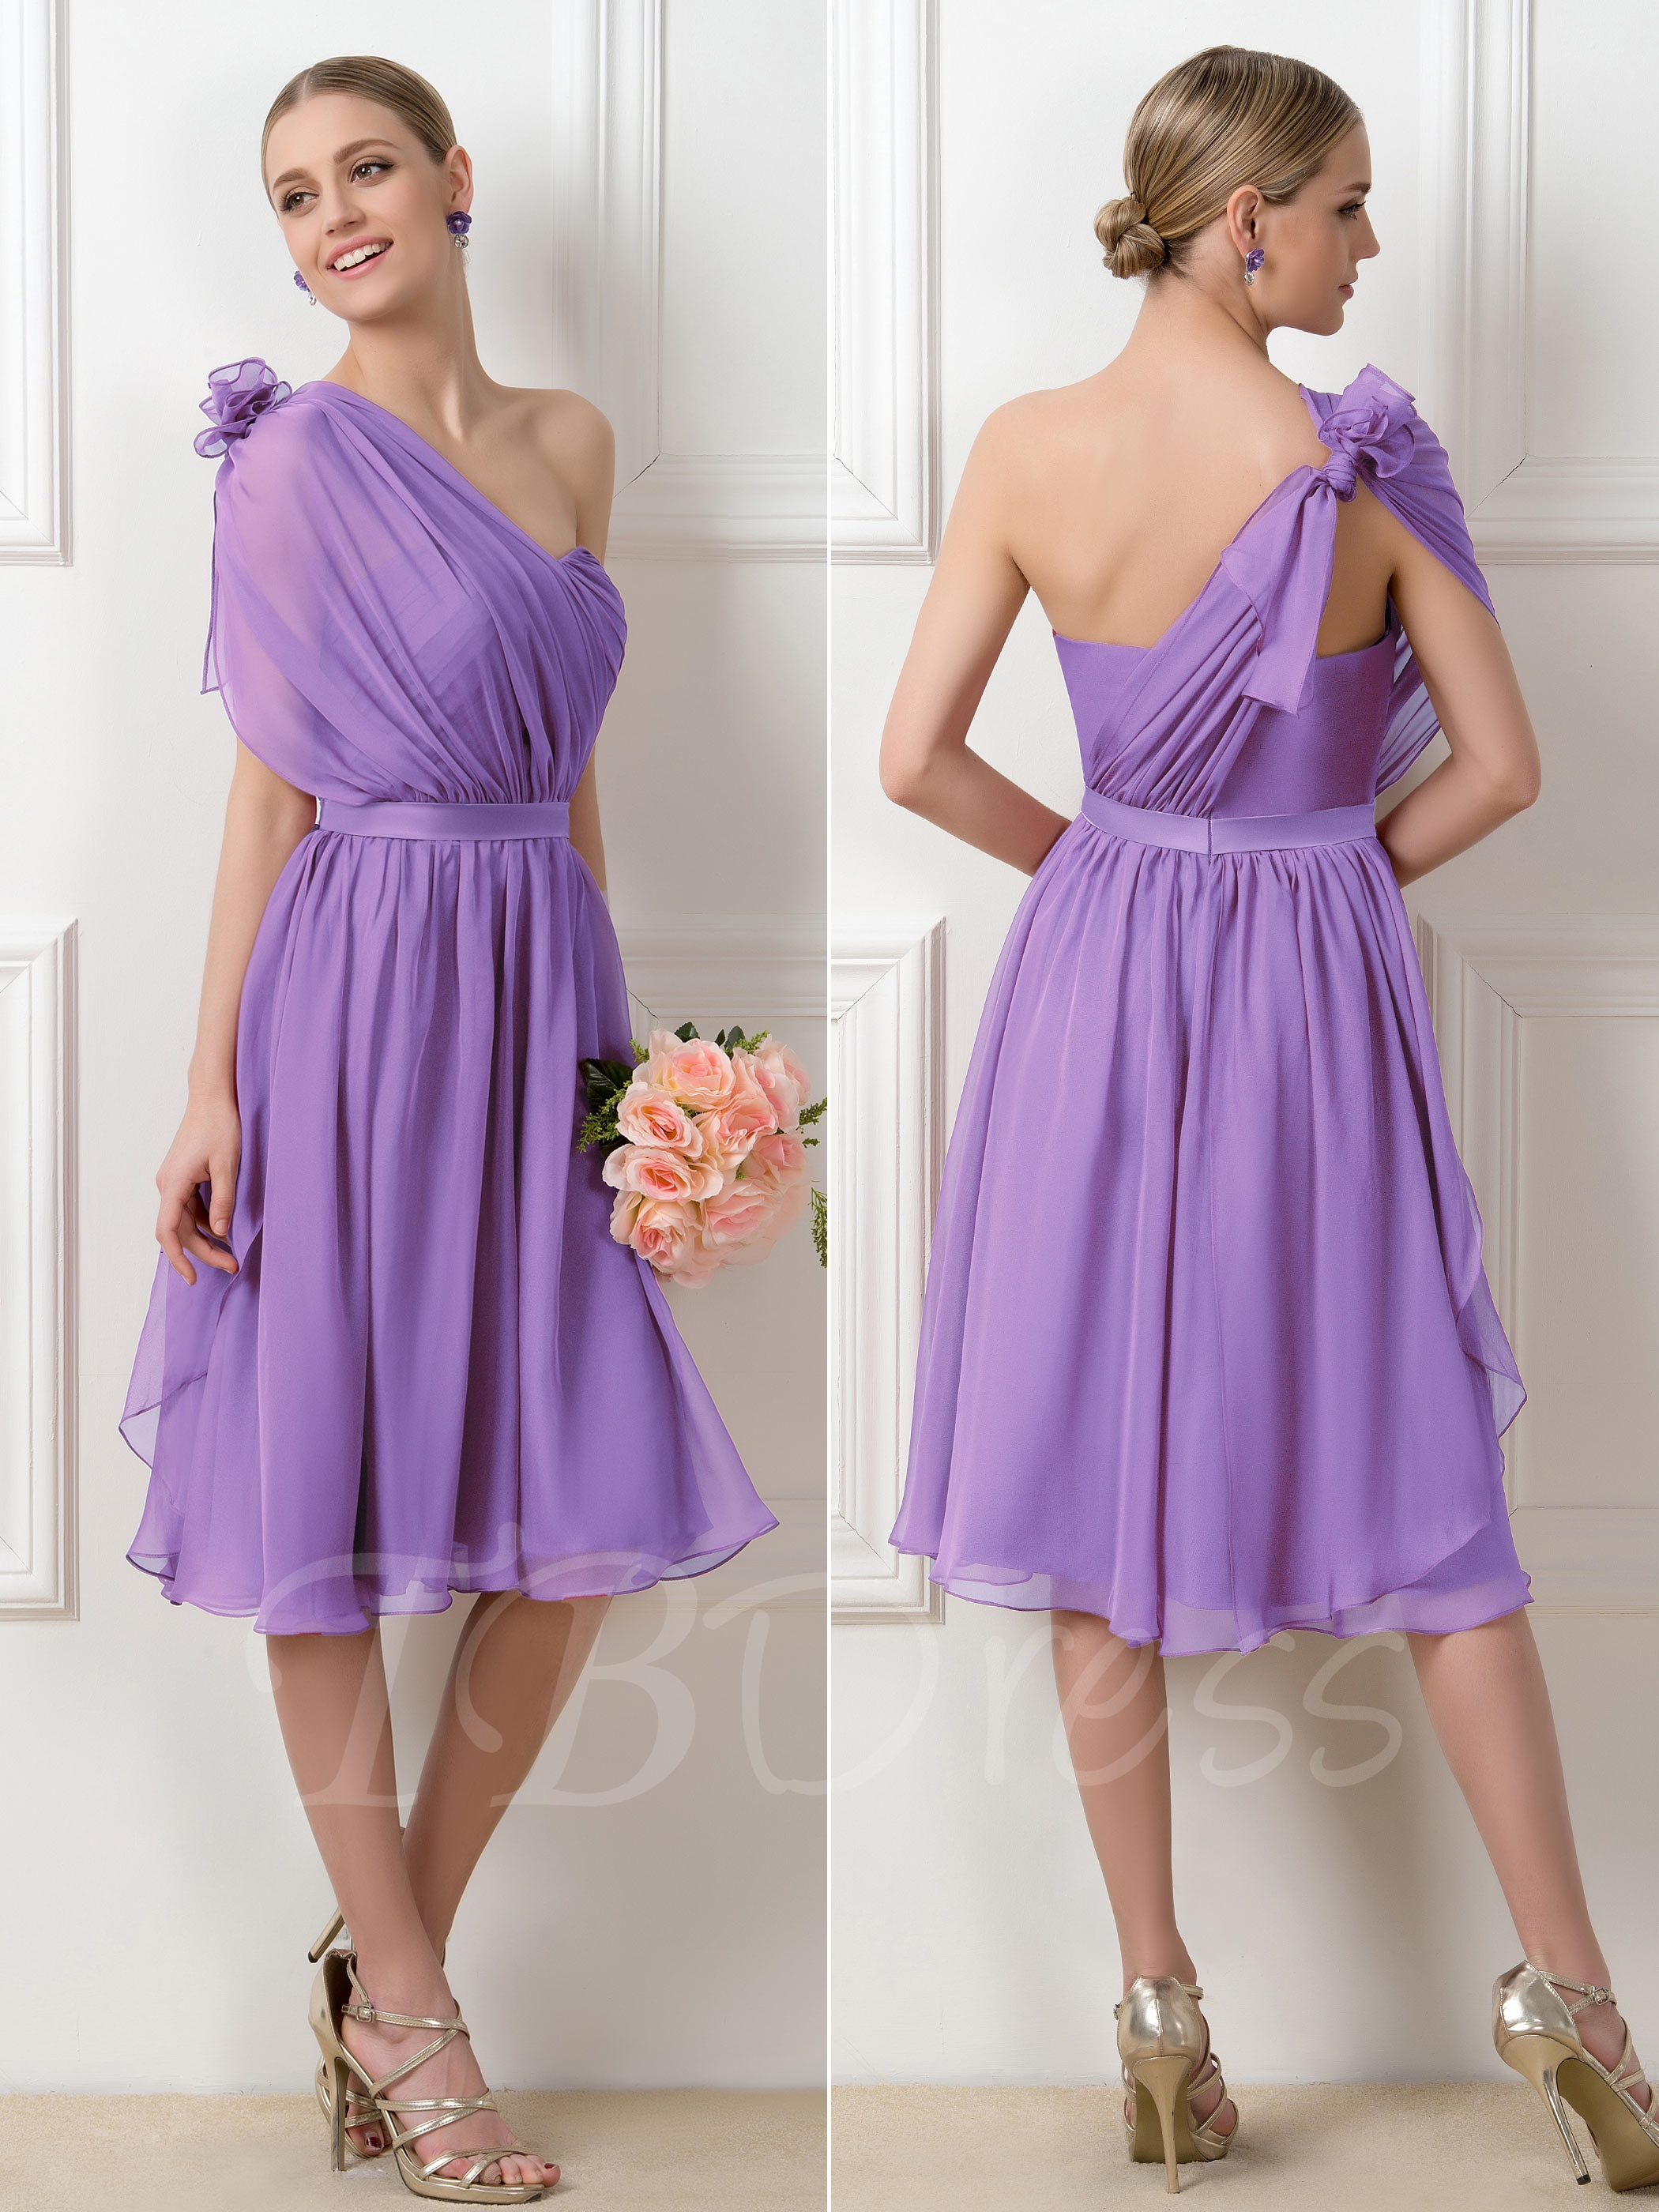 2f863b7727a0 W248 Romantic Purple Convertible A-Line Knee-Length Short Bridesmaid Dress